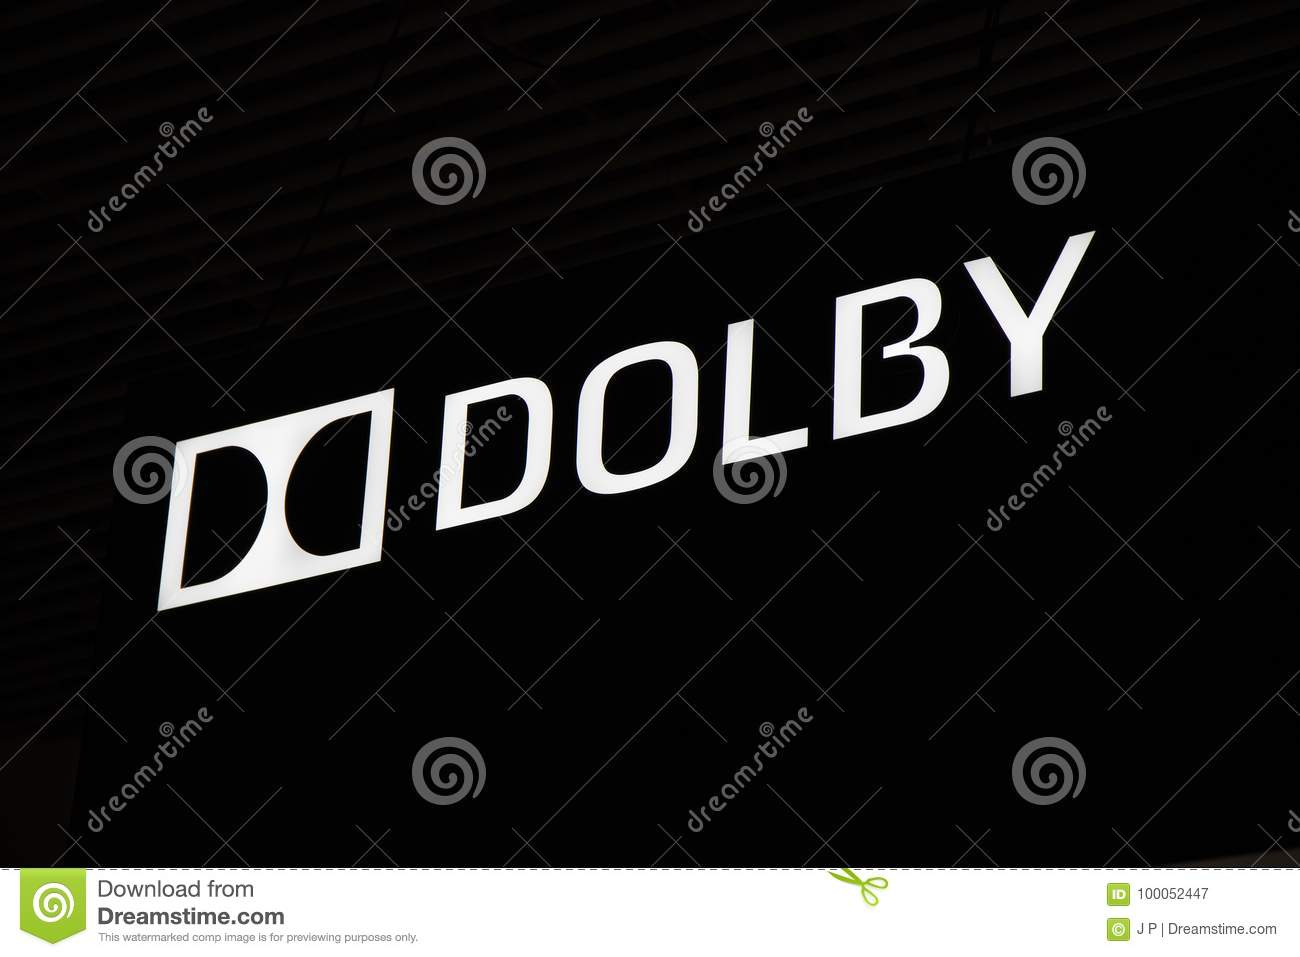 Dolby logo and letters